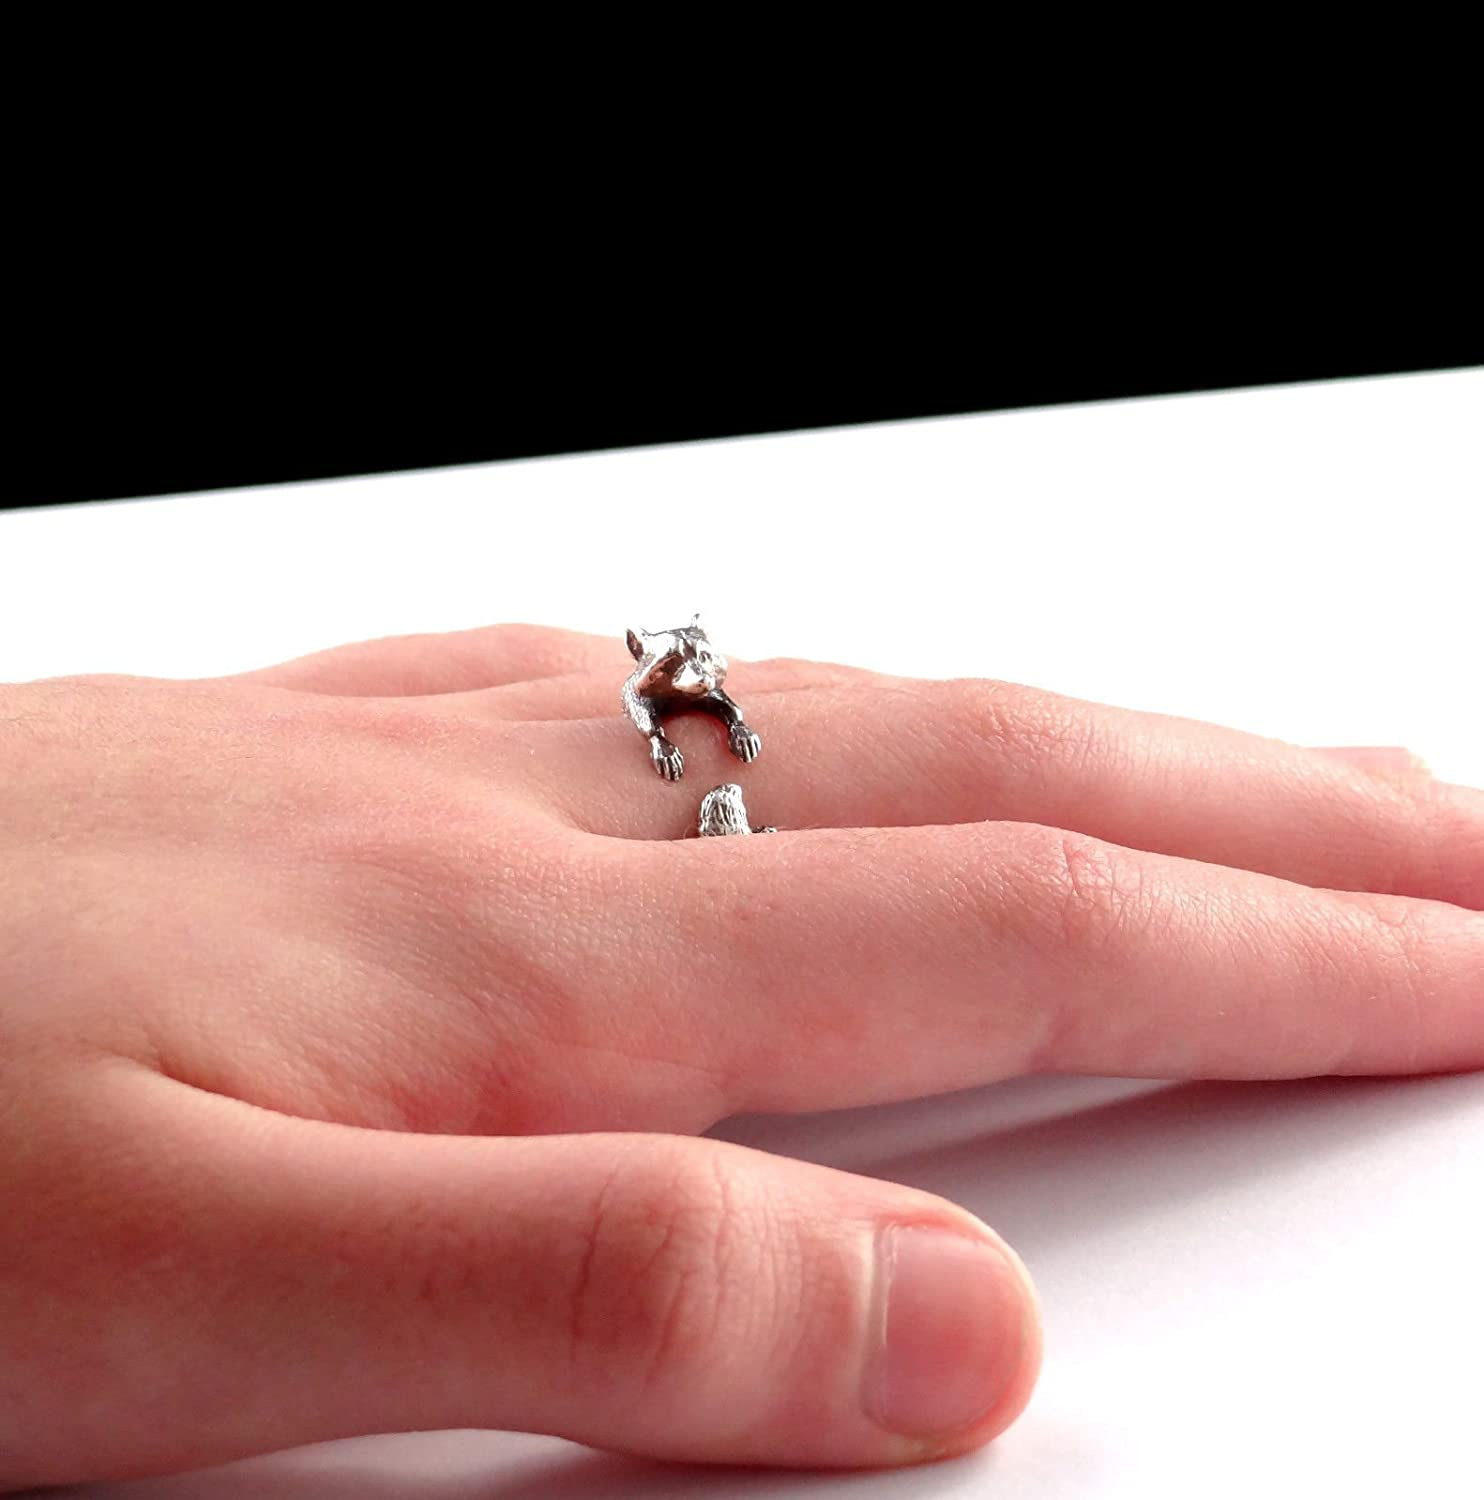 Amazon.com: Silver raccoon ring, cute animal jewelry, sterling ...